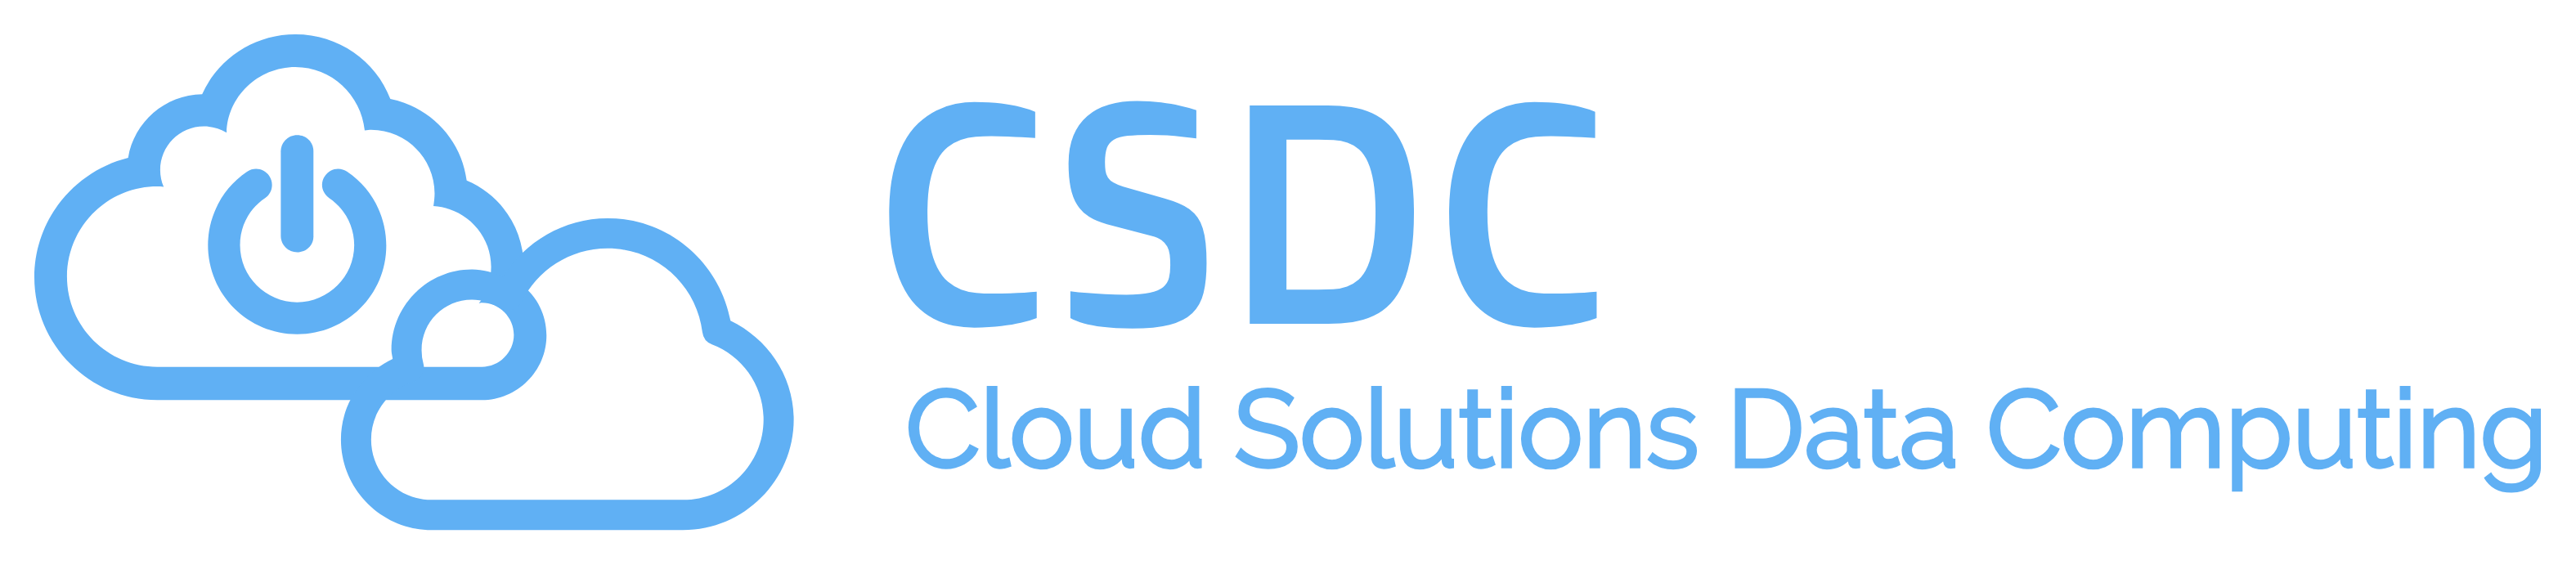 CSDC - Web & Cloud Hosting